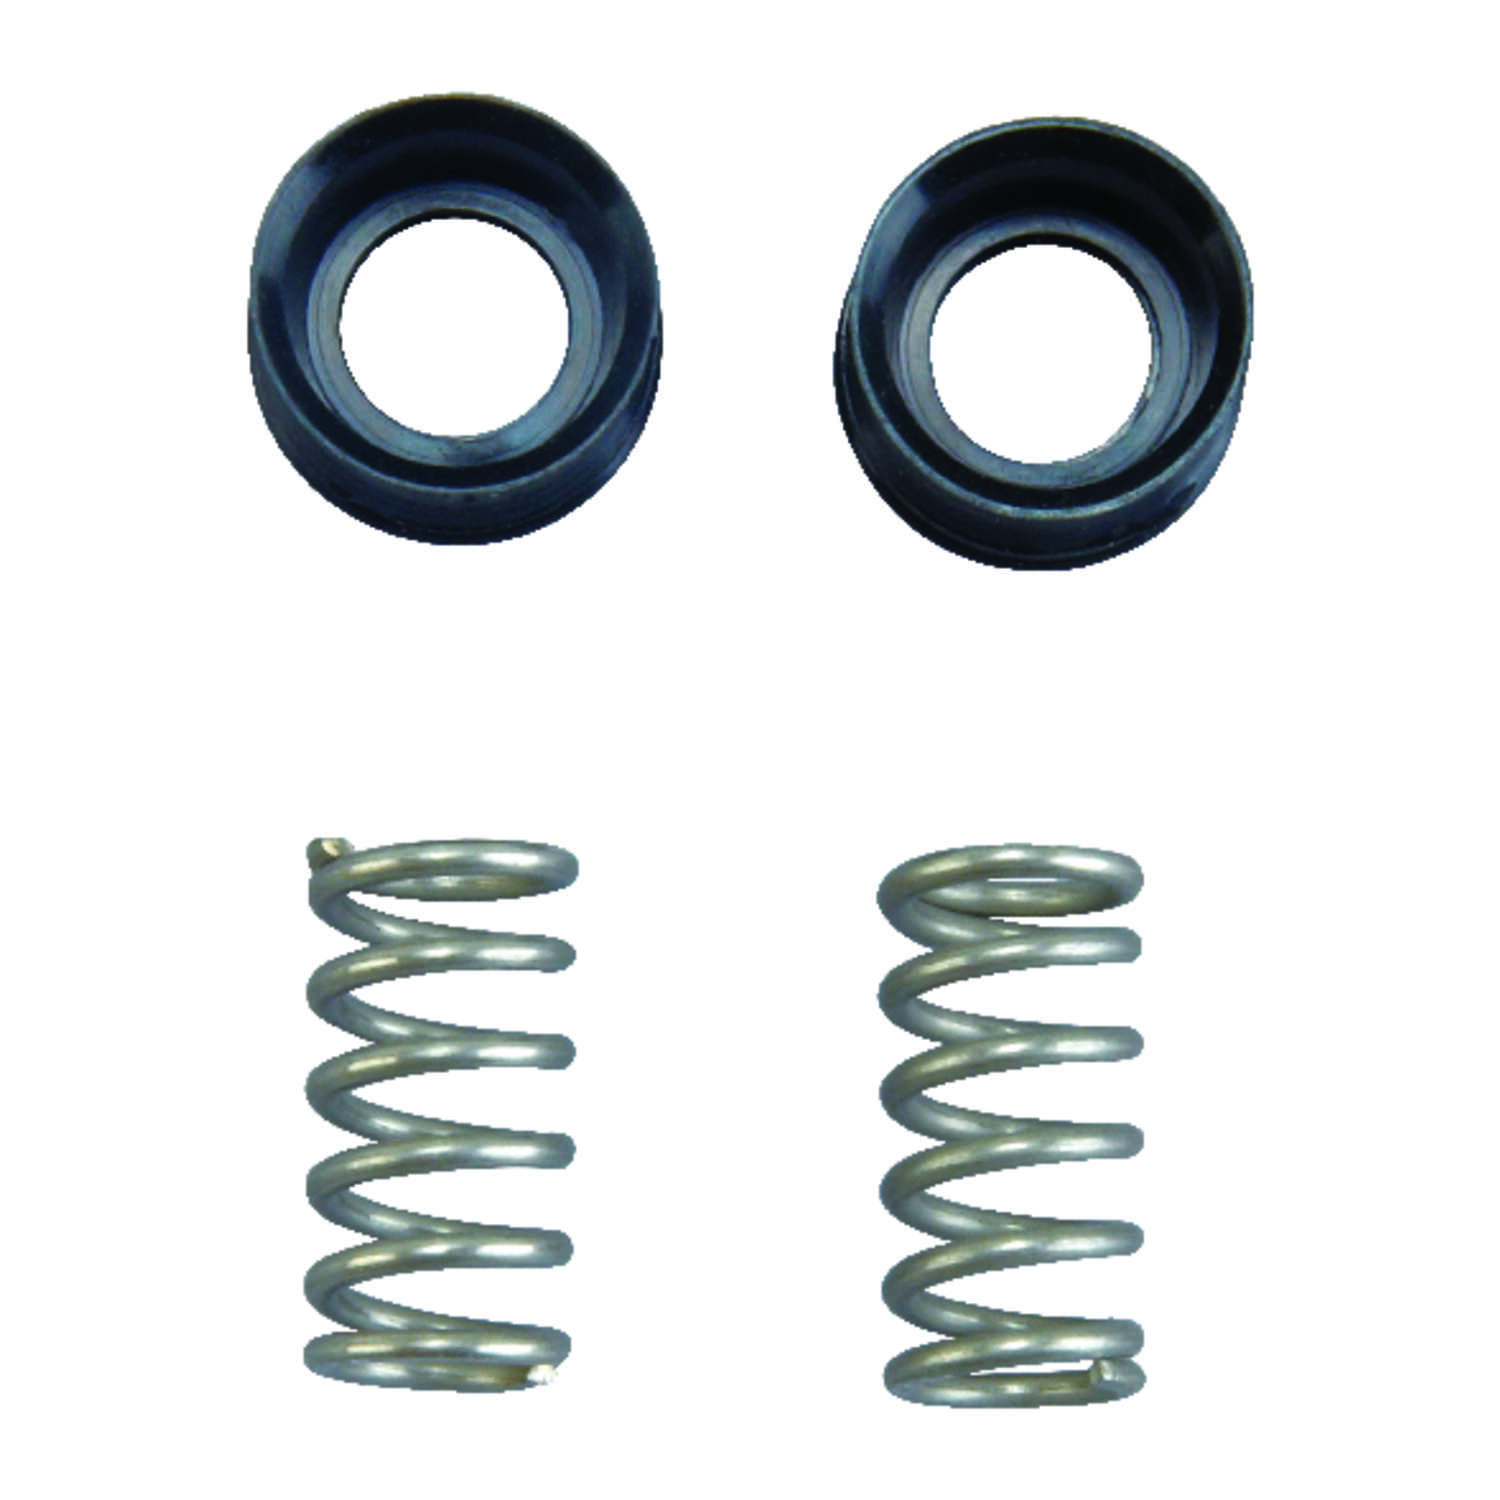 Ace  1/2 - 24  Other  Seats and Springs  Plastic/Metal